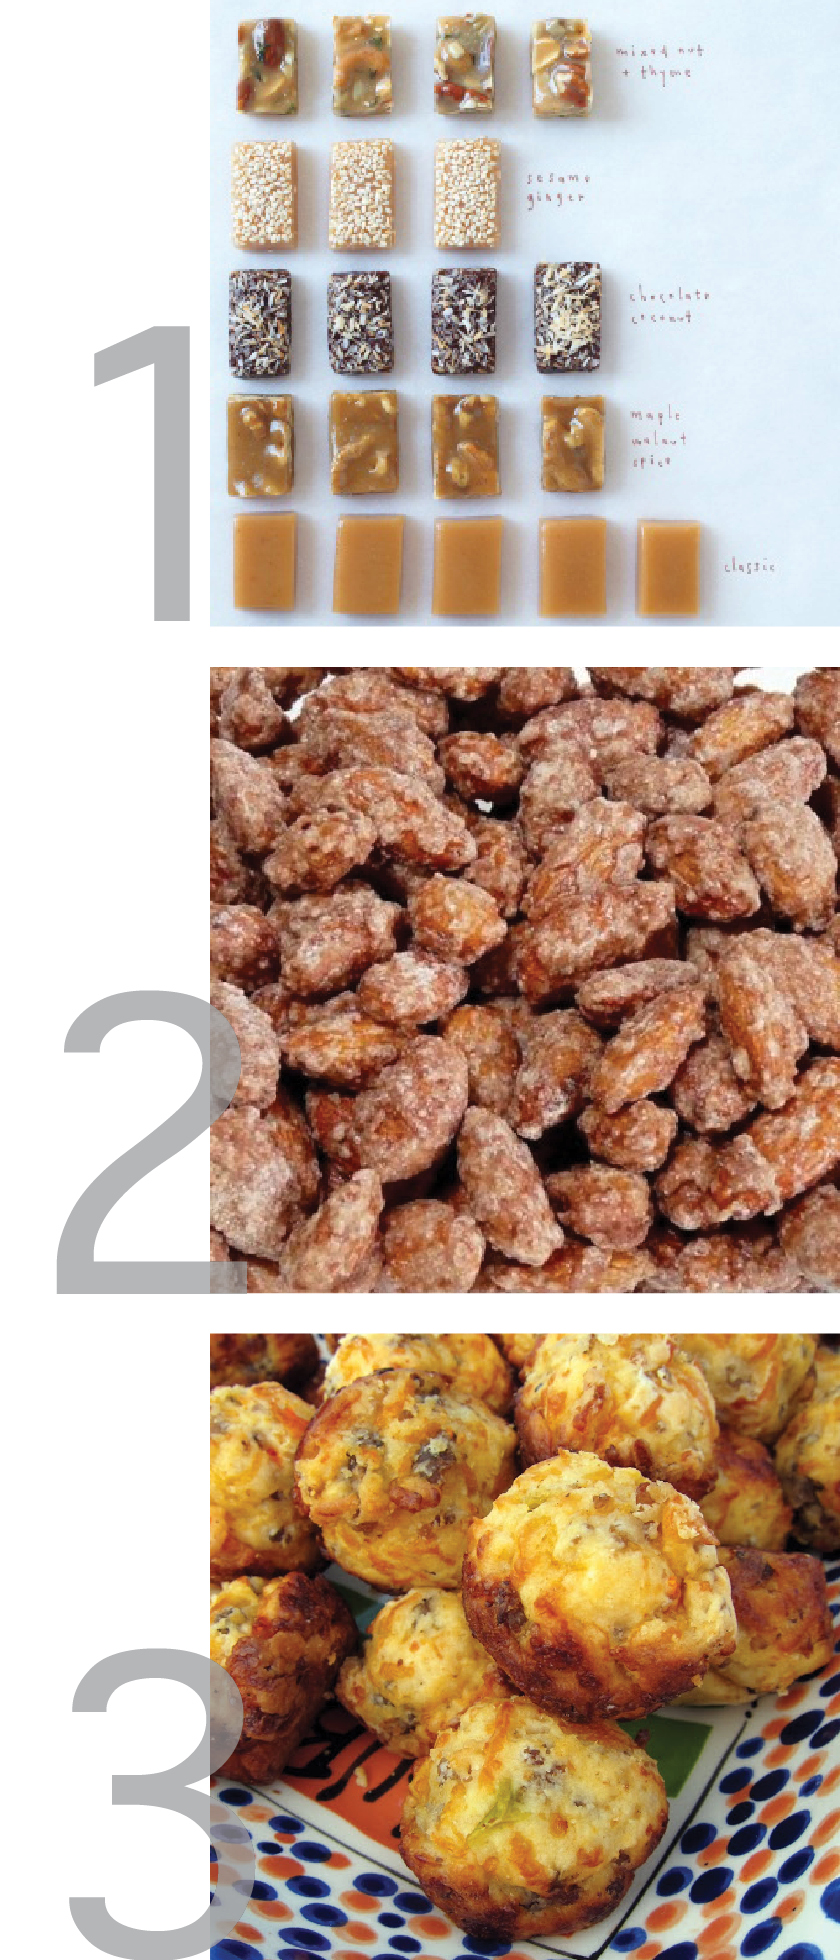 a graphic showing pictures of cinnamon almonds, sausage and cheese muffins and caramels